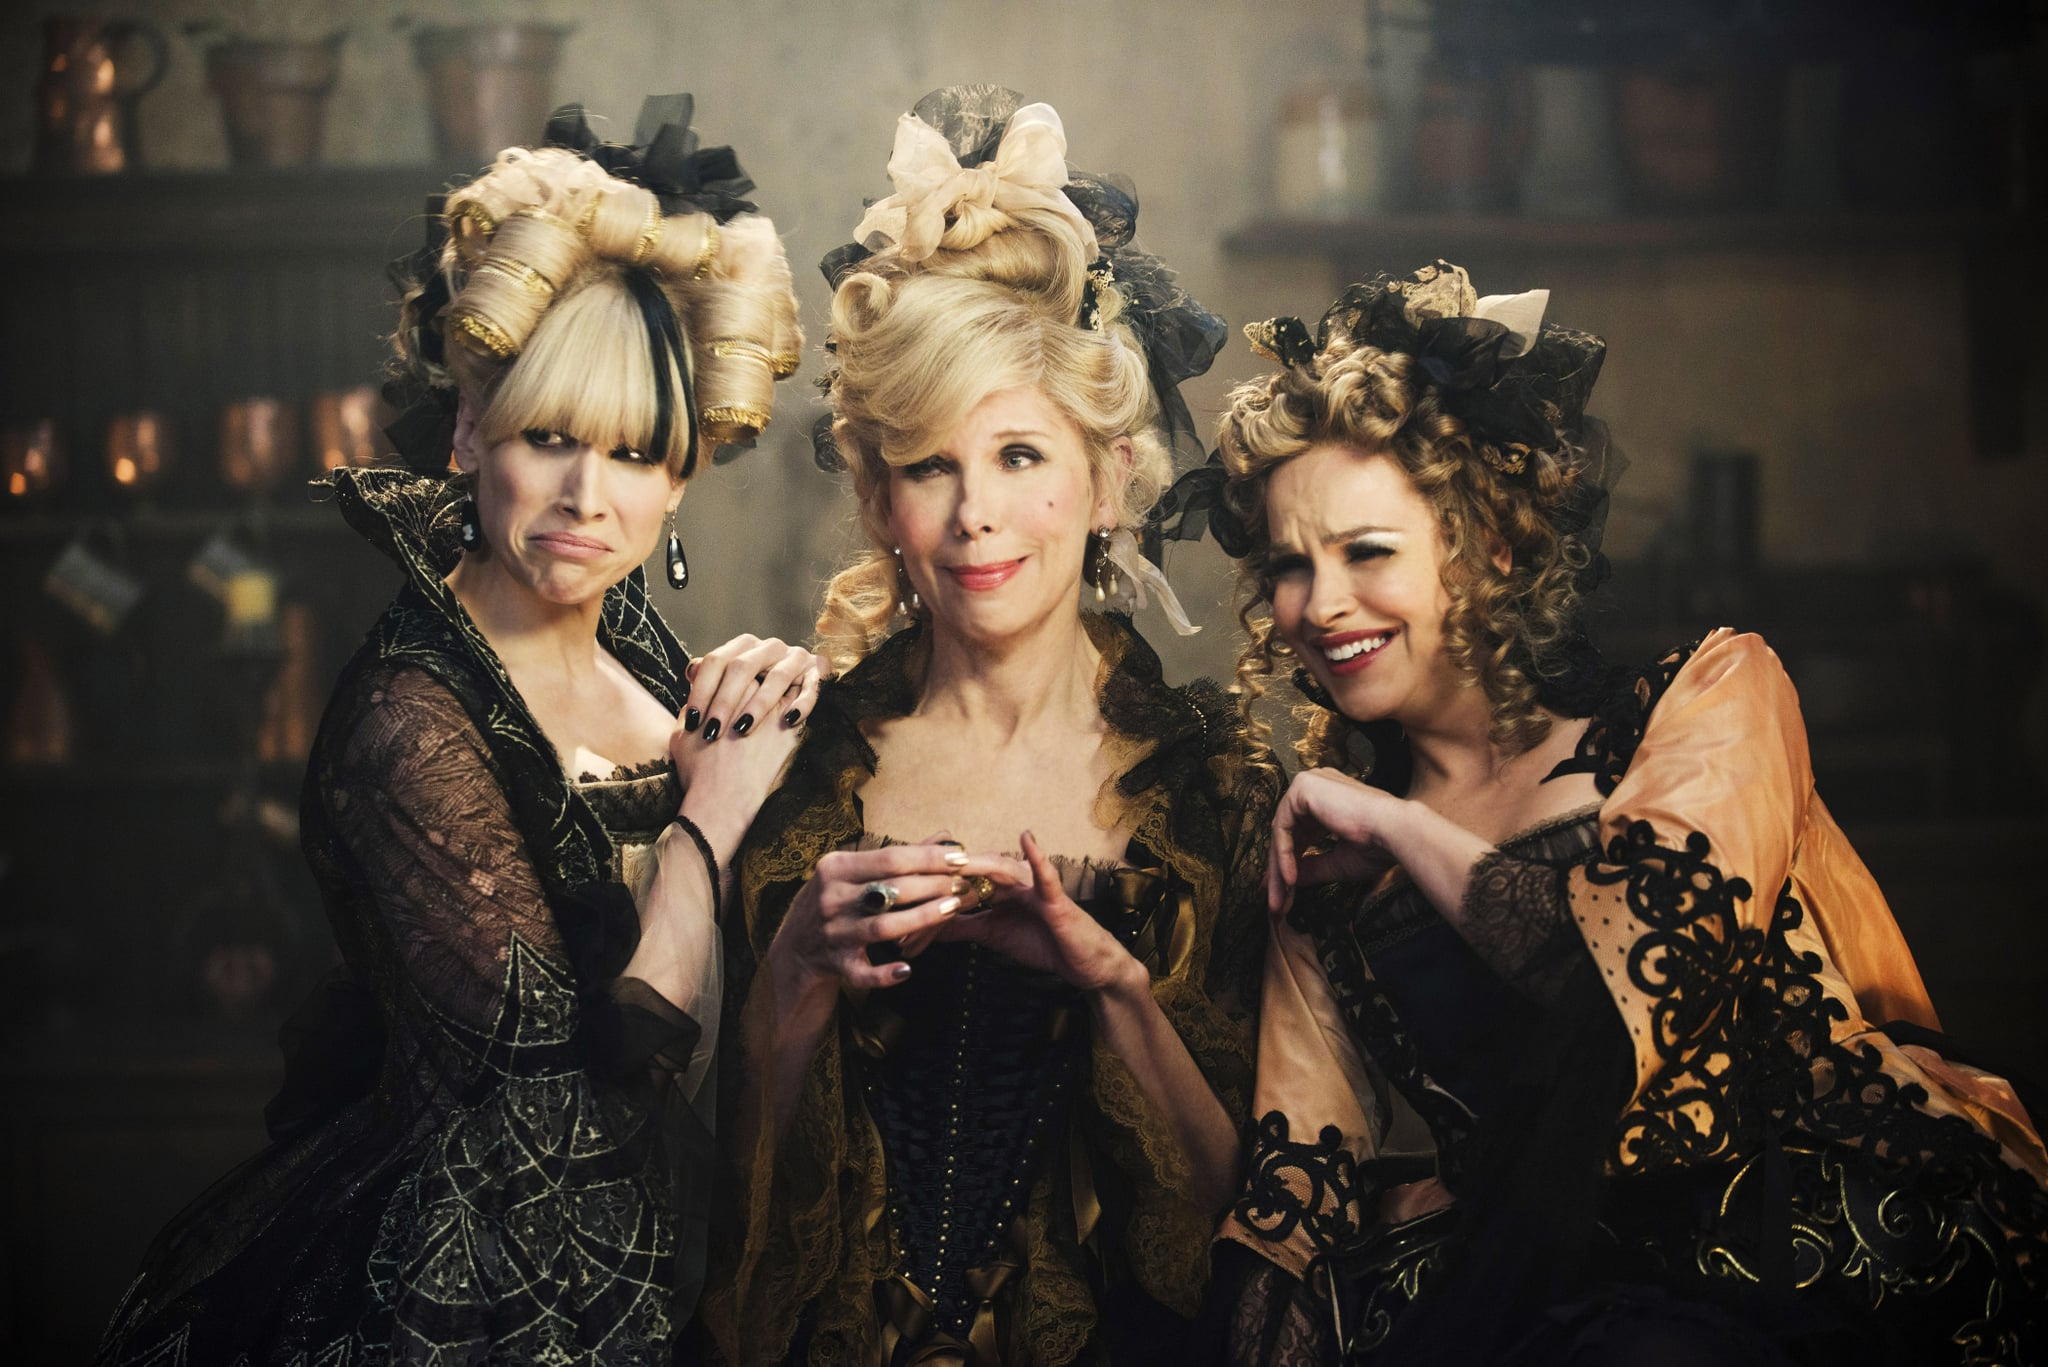 INTO THE WOODS, from left: Lucy Punch, Christine Baranski, Tammy Blanchard, 2014. ph: Peter Mountain/Walt Disney Studios Motion Pictures/Courtesy Everett Collection